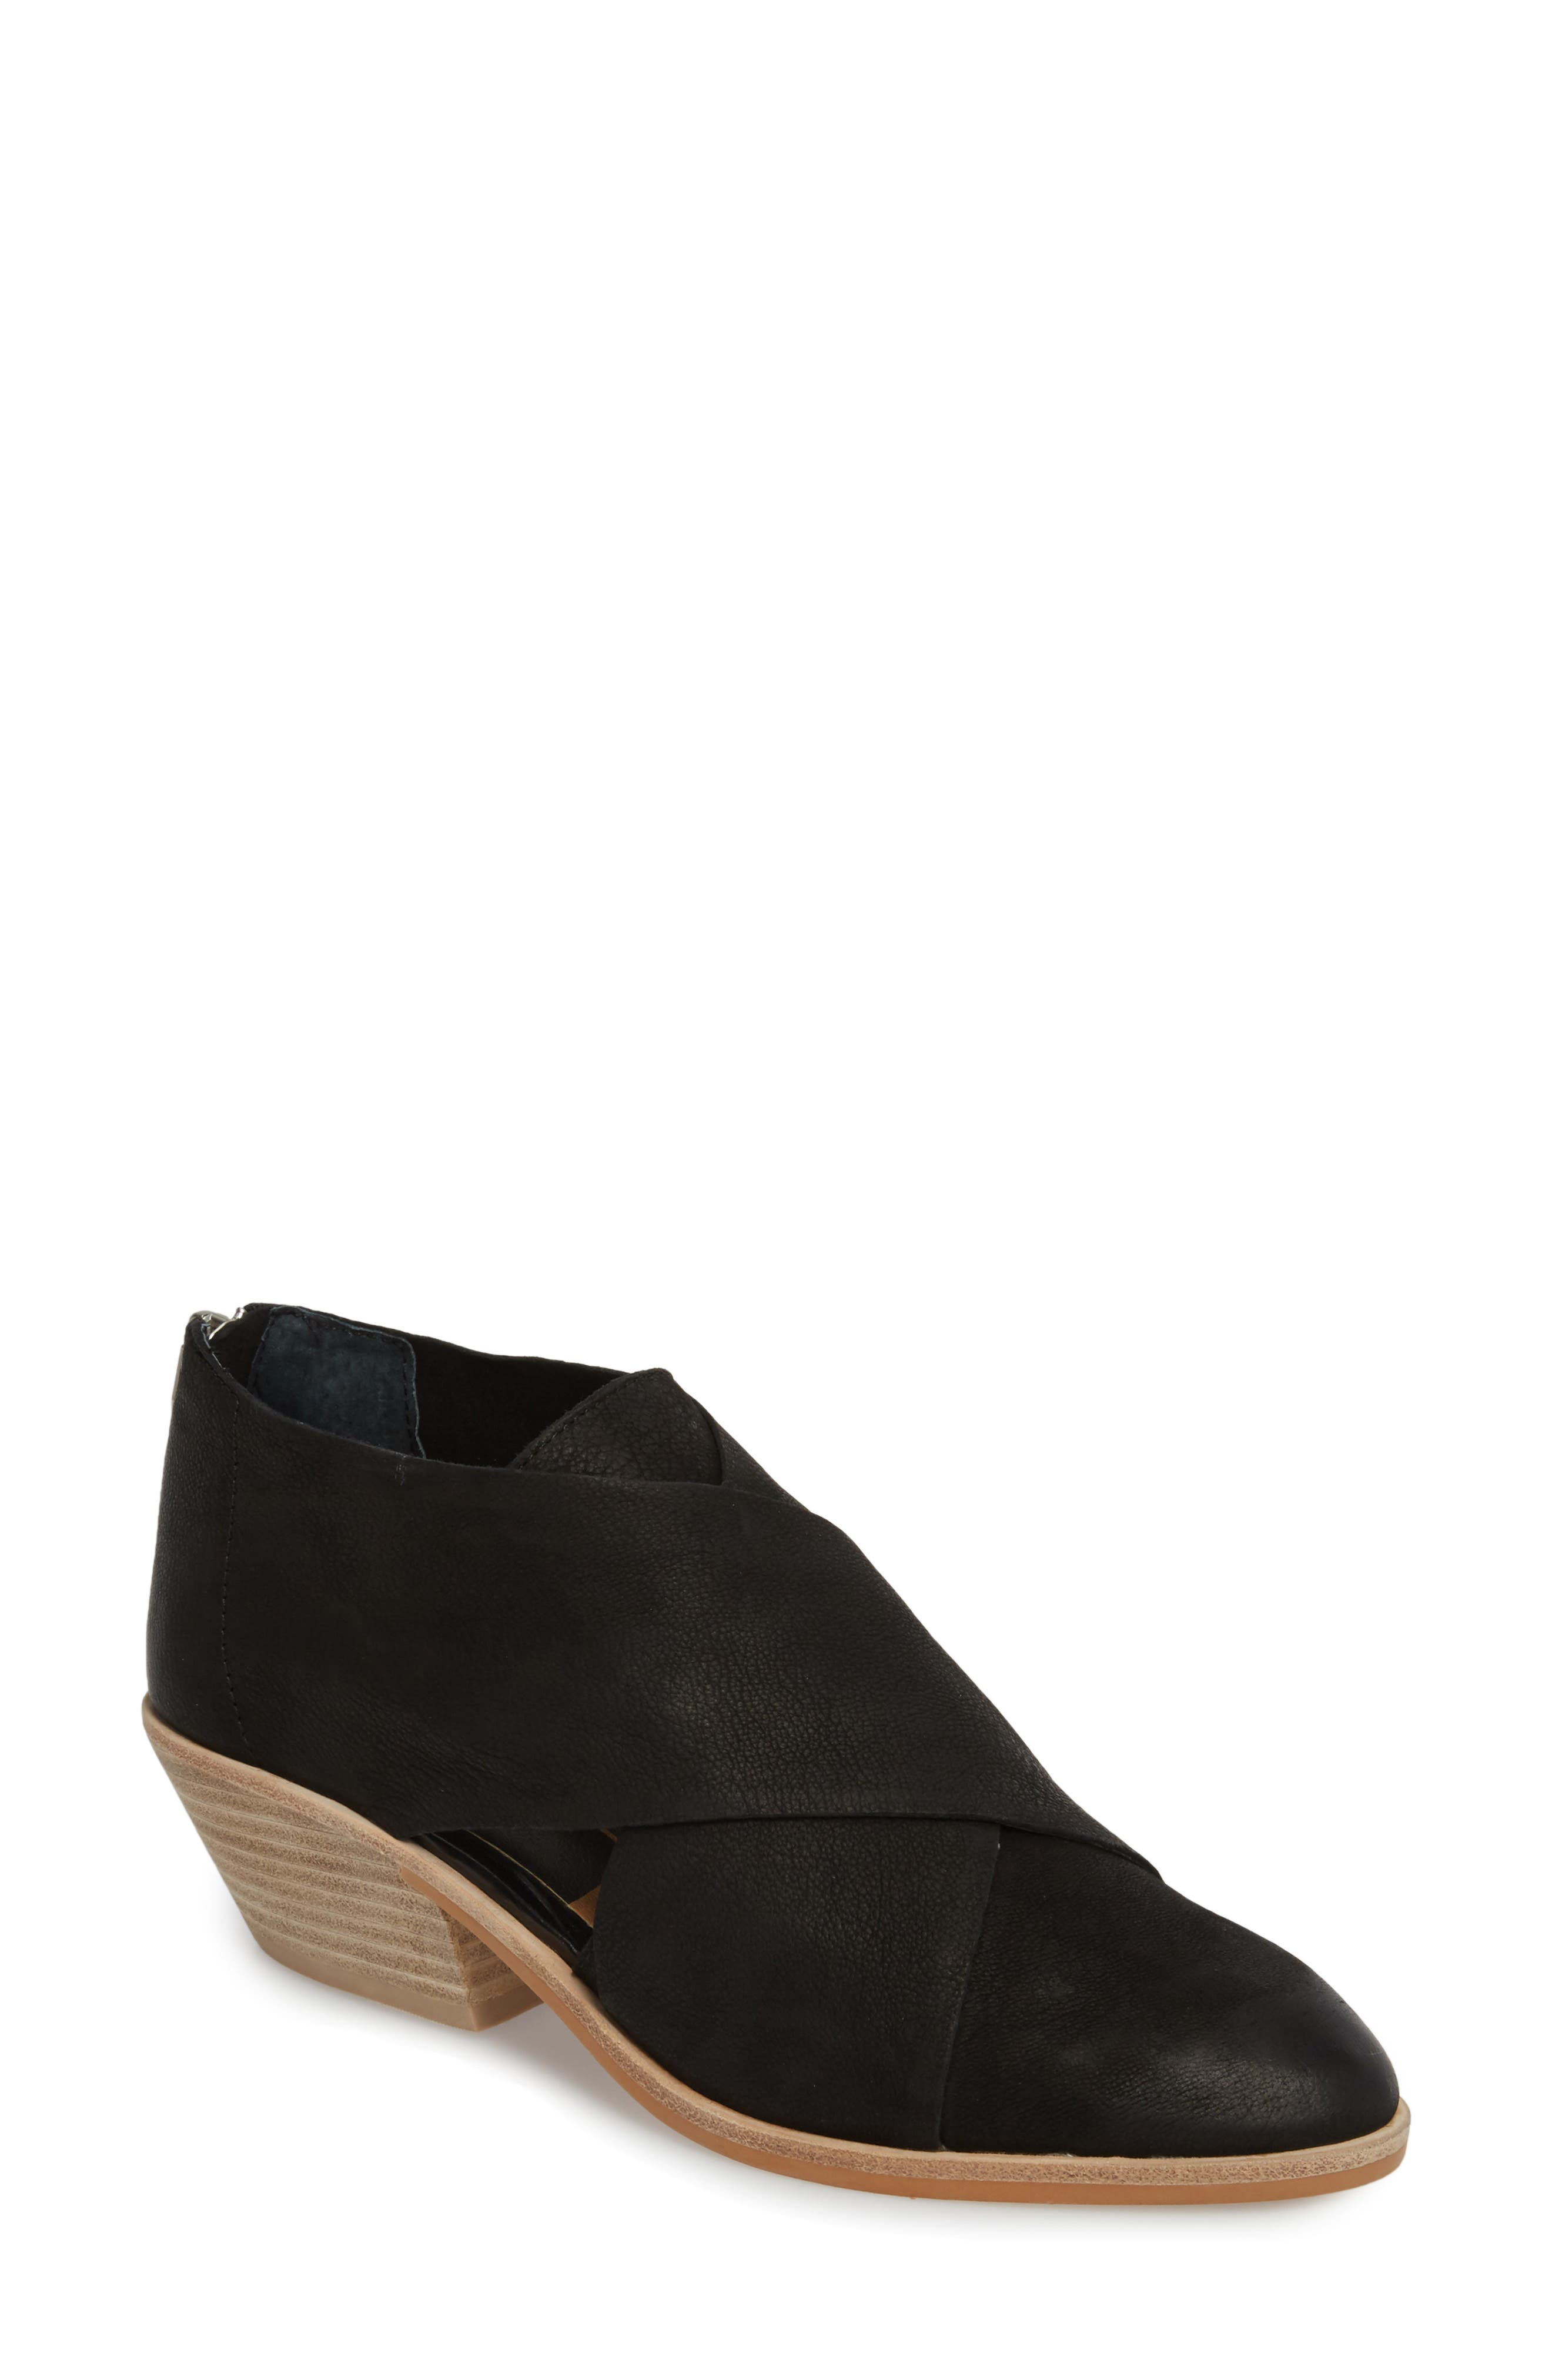 Alternate Image 1 Selected - Dolce Vita Loida Bootie (Women)